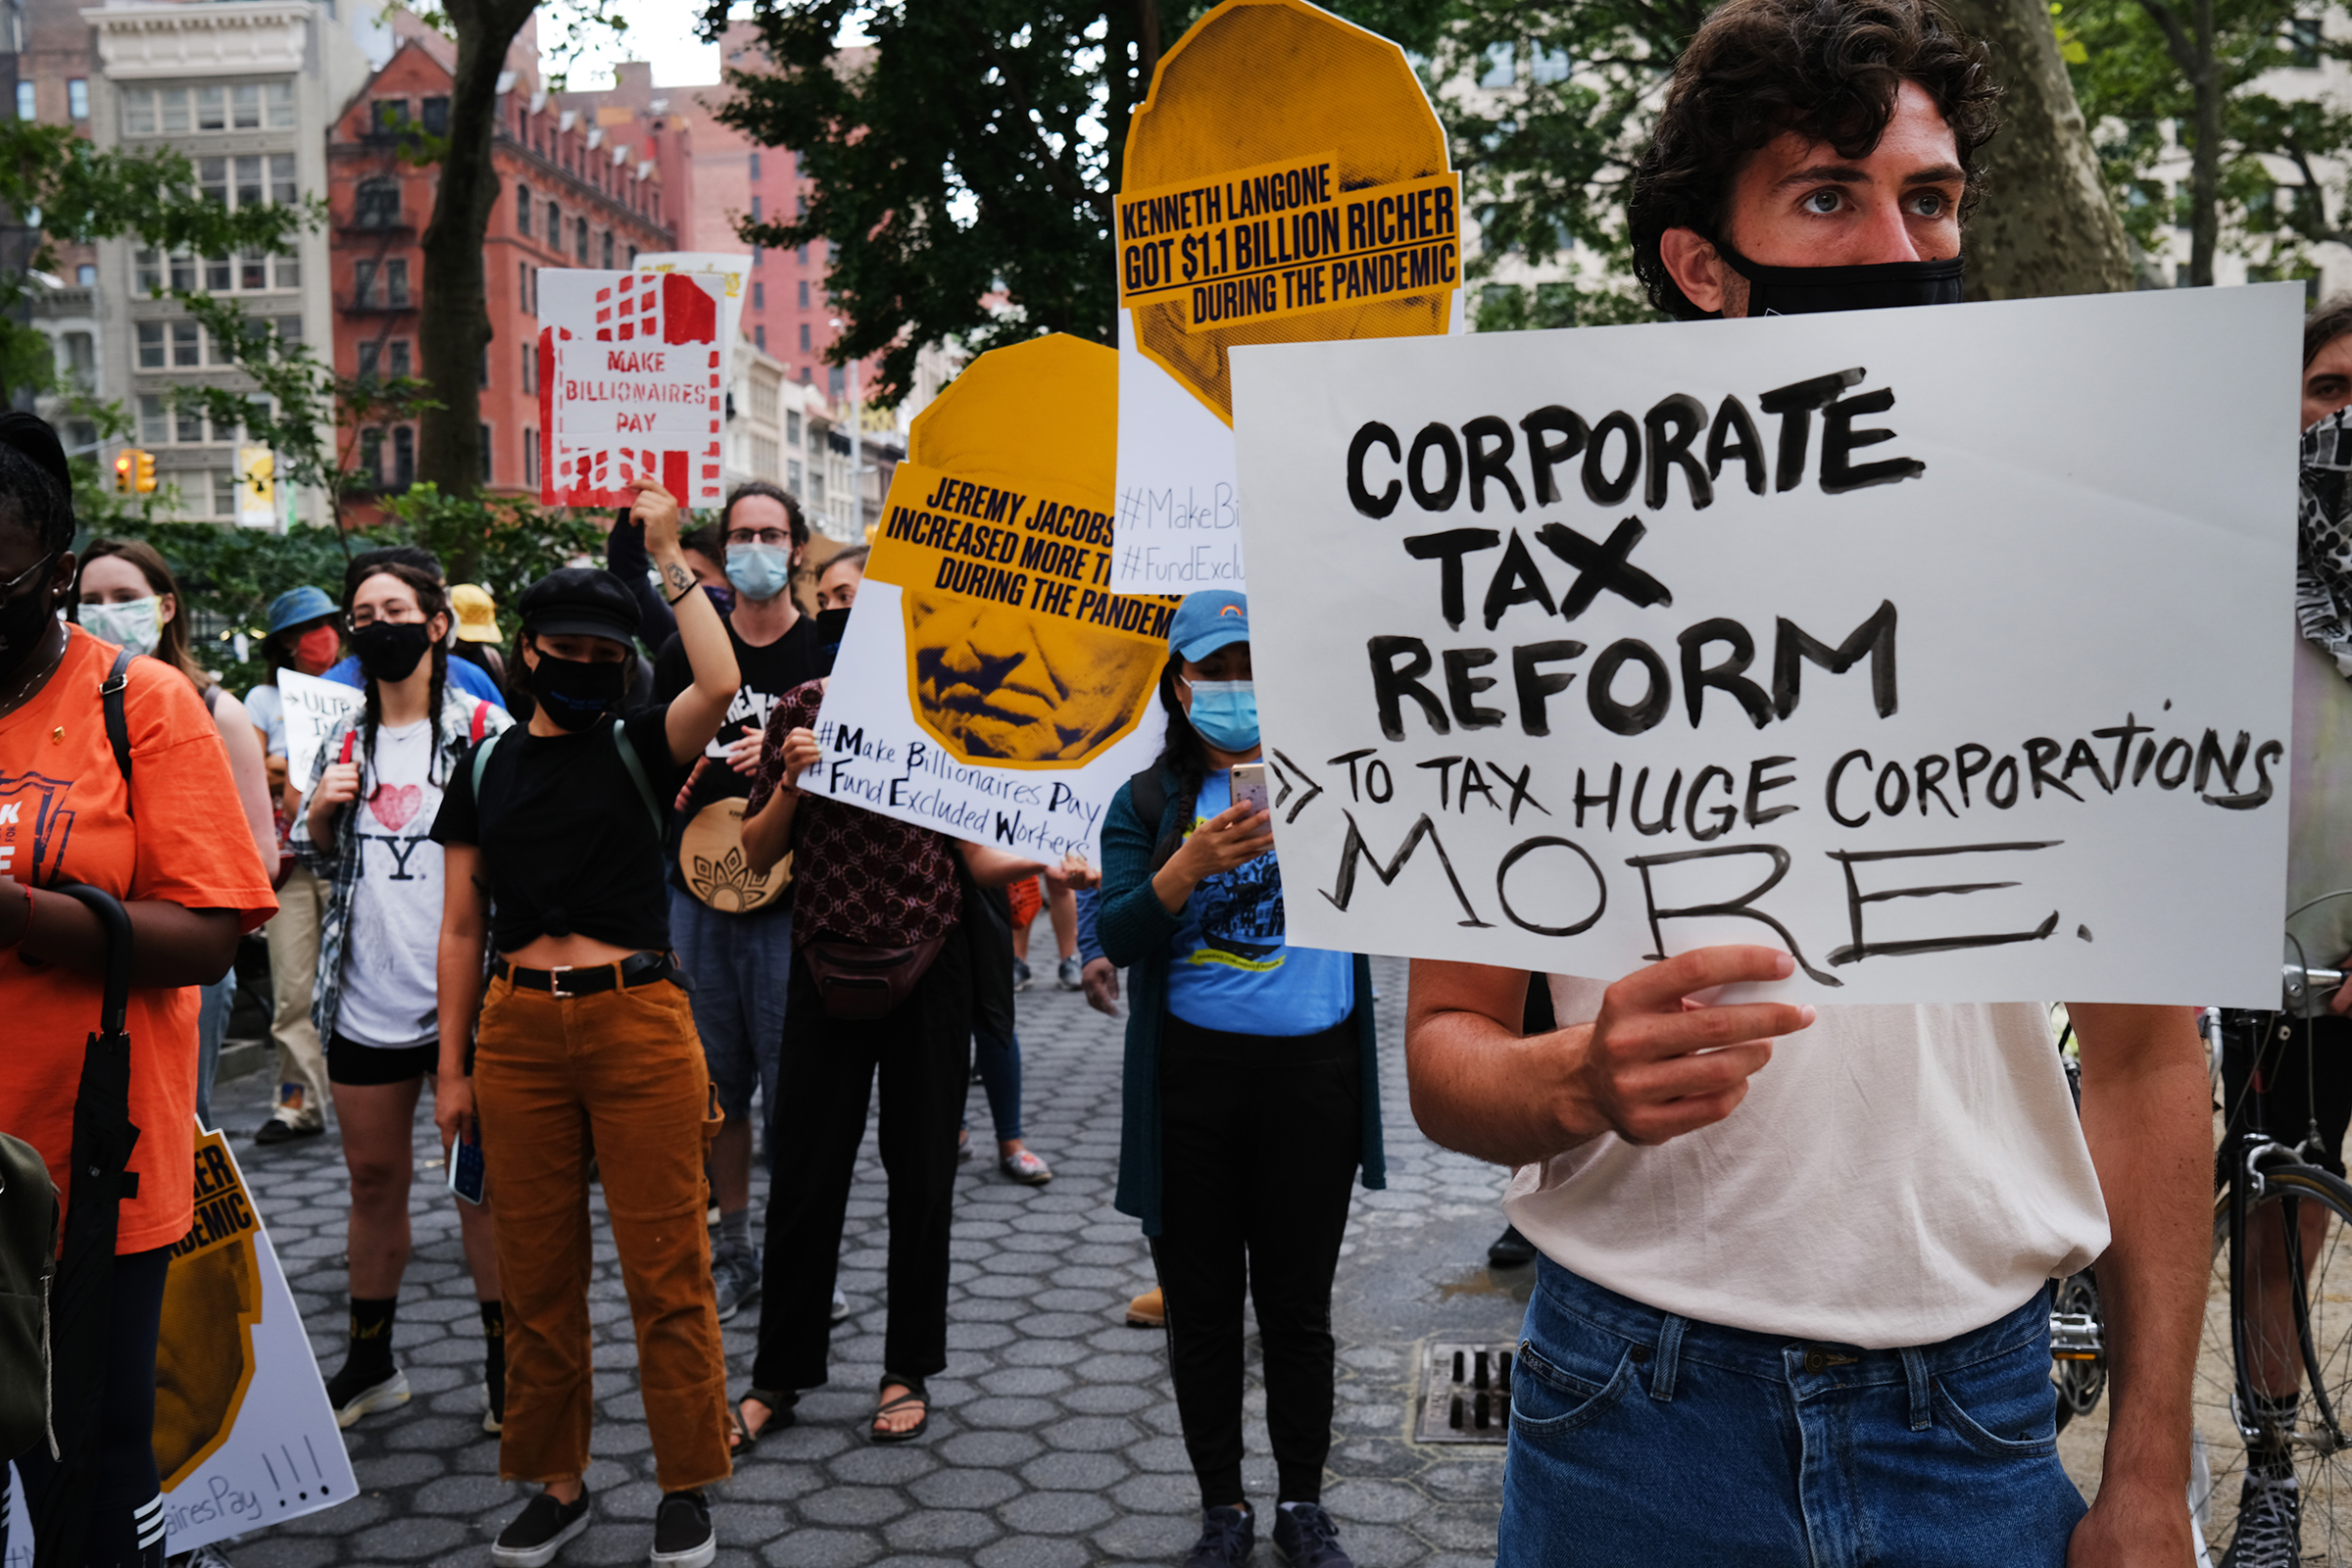 People participate in a  March on Billionaires  event on July 17 in New York City. The march called on Governor Andrew Cuomo to pass a tax on billionaires and to fund workers excluded from unemployment and federal aid programs